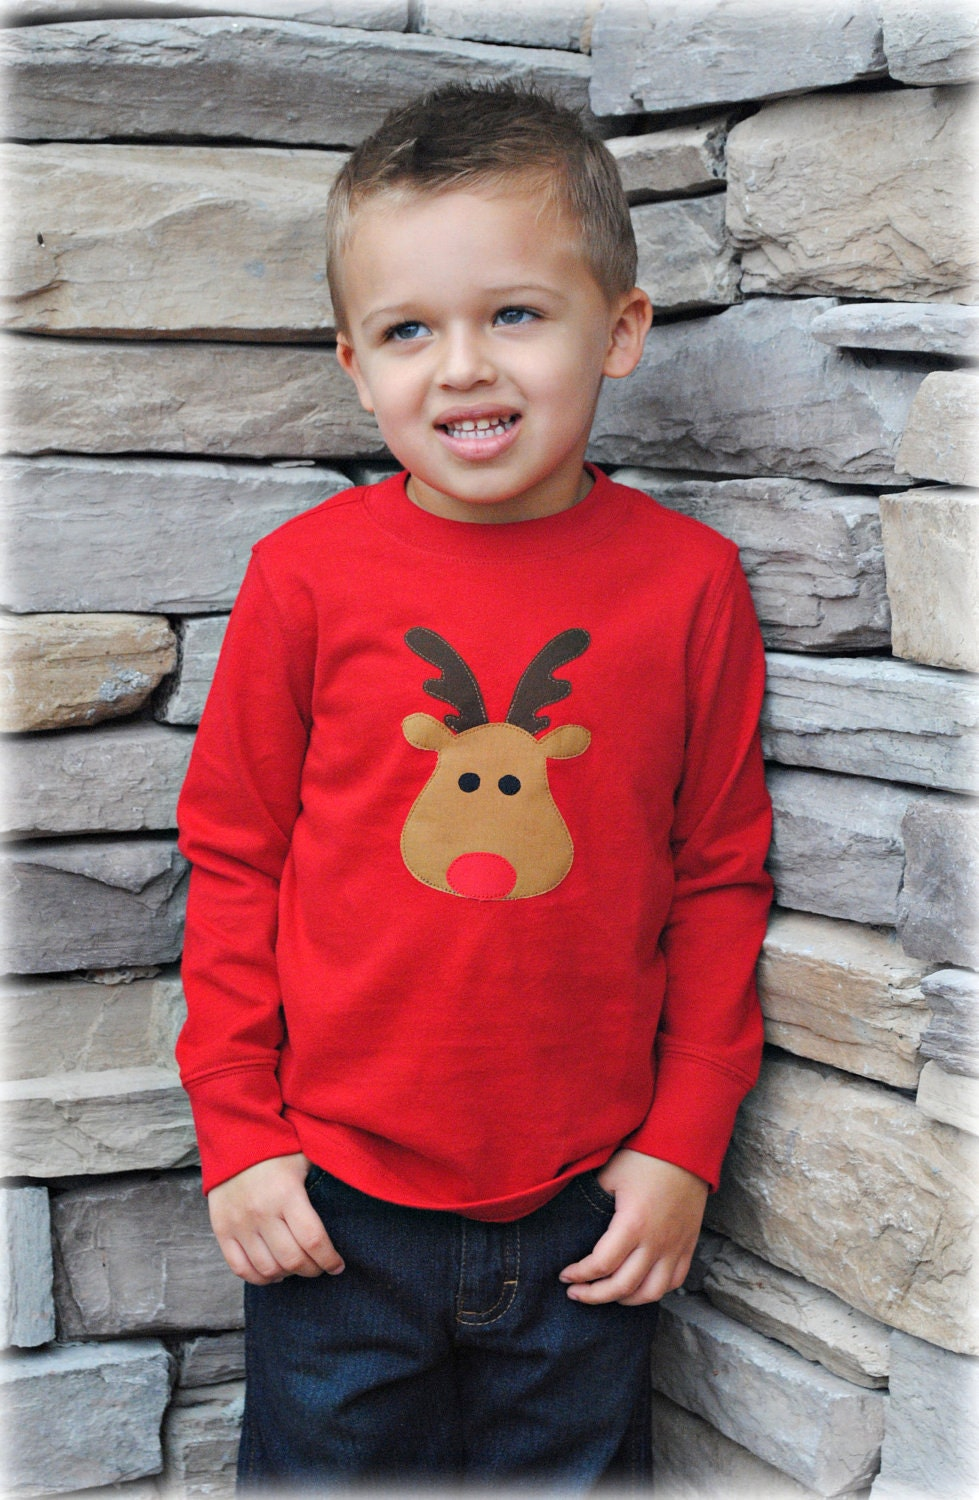 Spread the cheer with toddler boy Christmas clothes at Carter's. Shop now for the cutest toddler boy holiday clothes & enjoy free shipping.